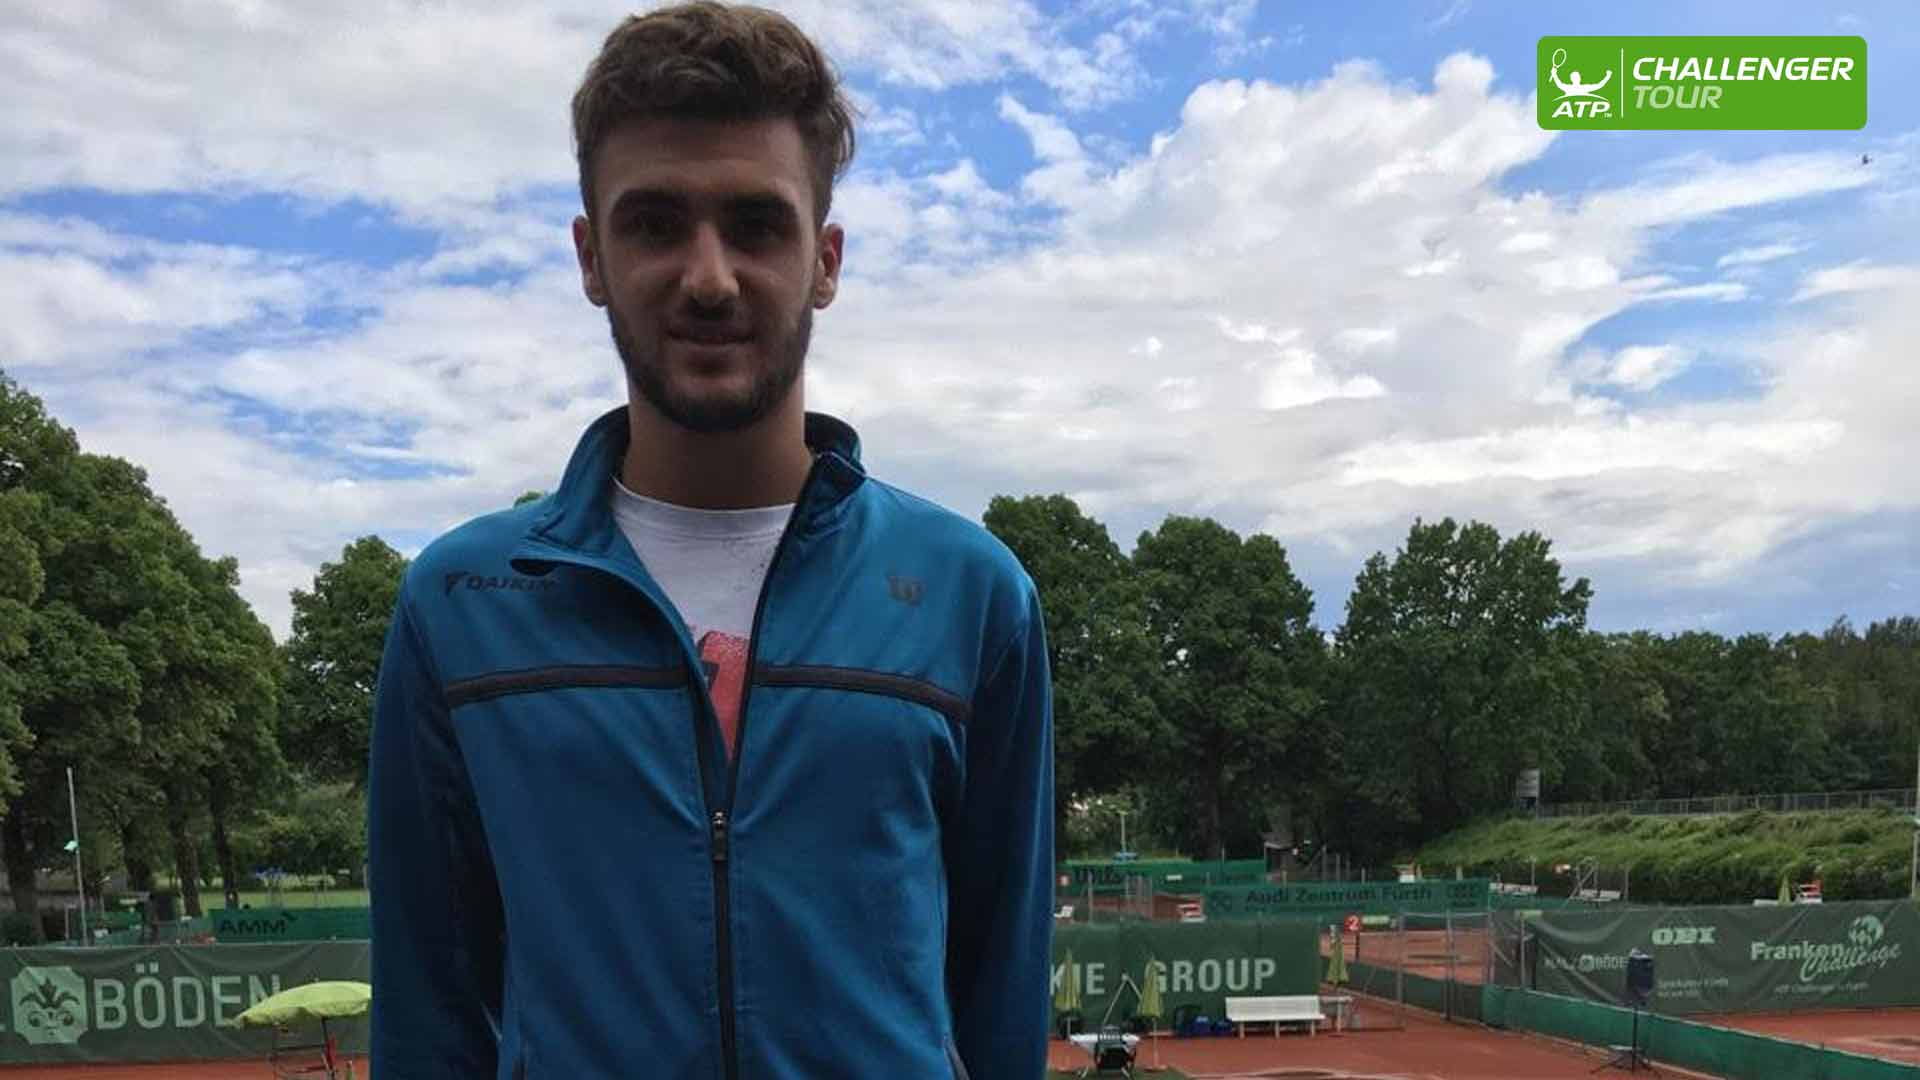 Paul Woerner made his ATP Challenger Tour main draw debut in Furth.